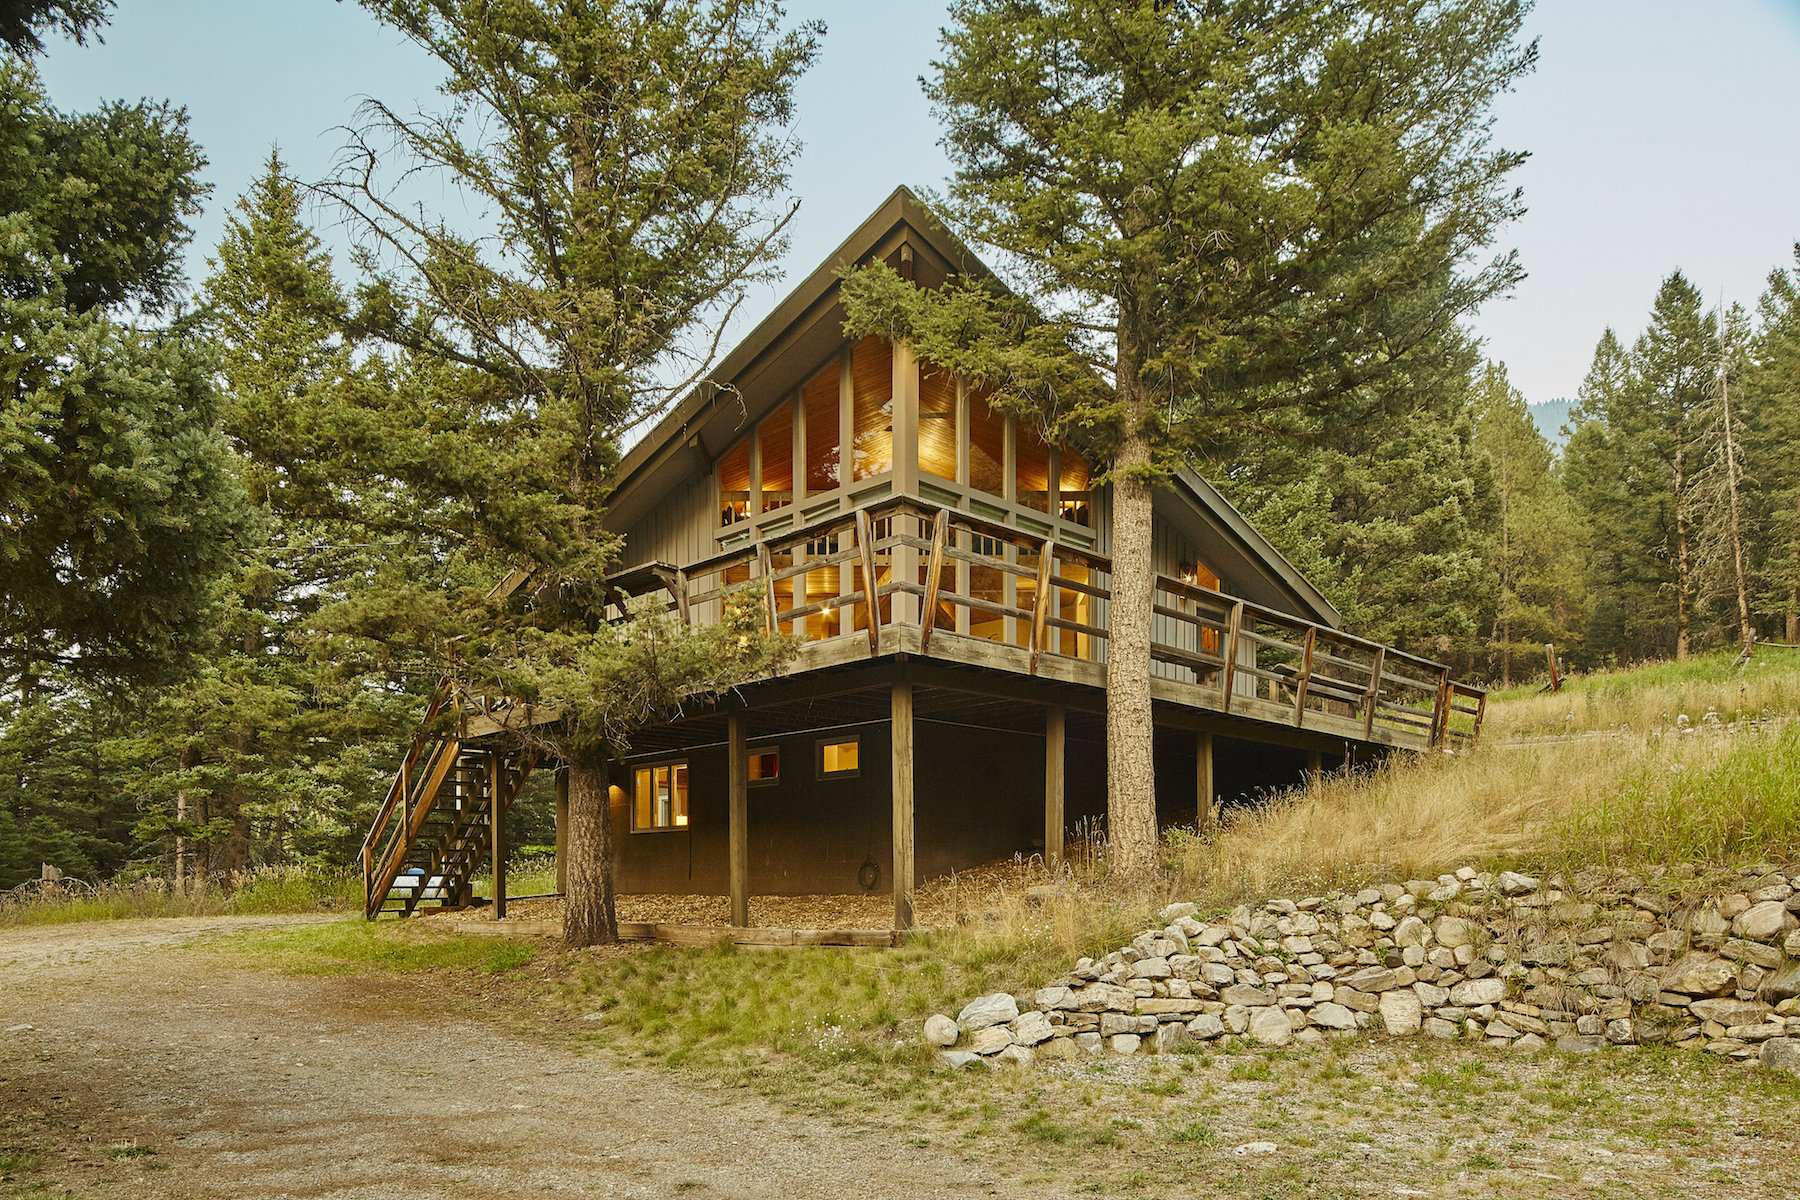 Single Family Home for Sale at Charming Private Home 49850 Gallatin Canyon Big Sky, Montana 59716 United States